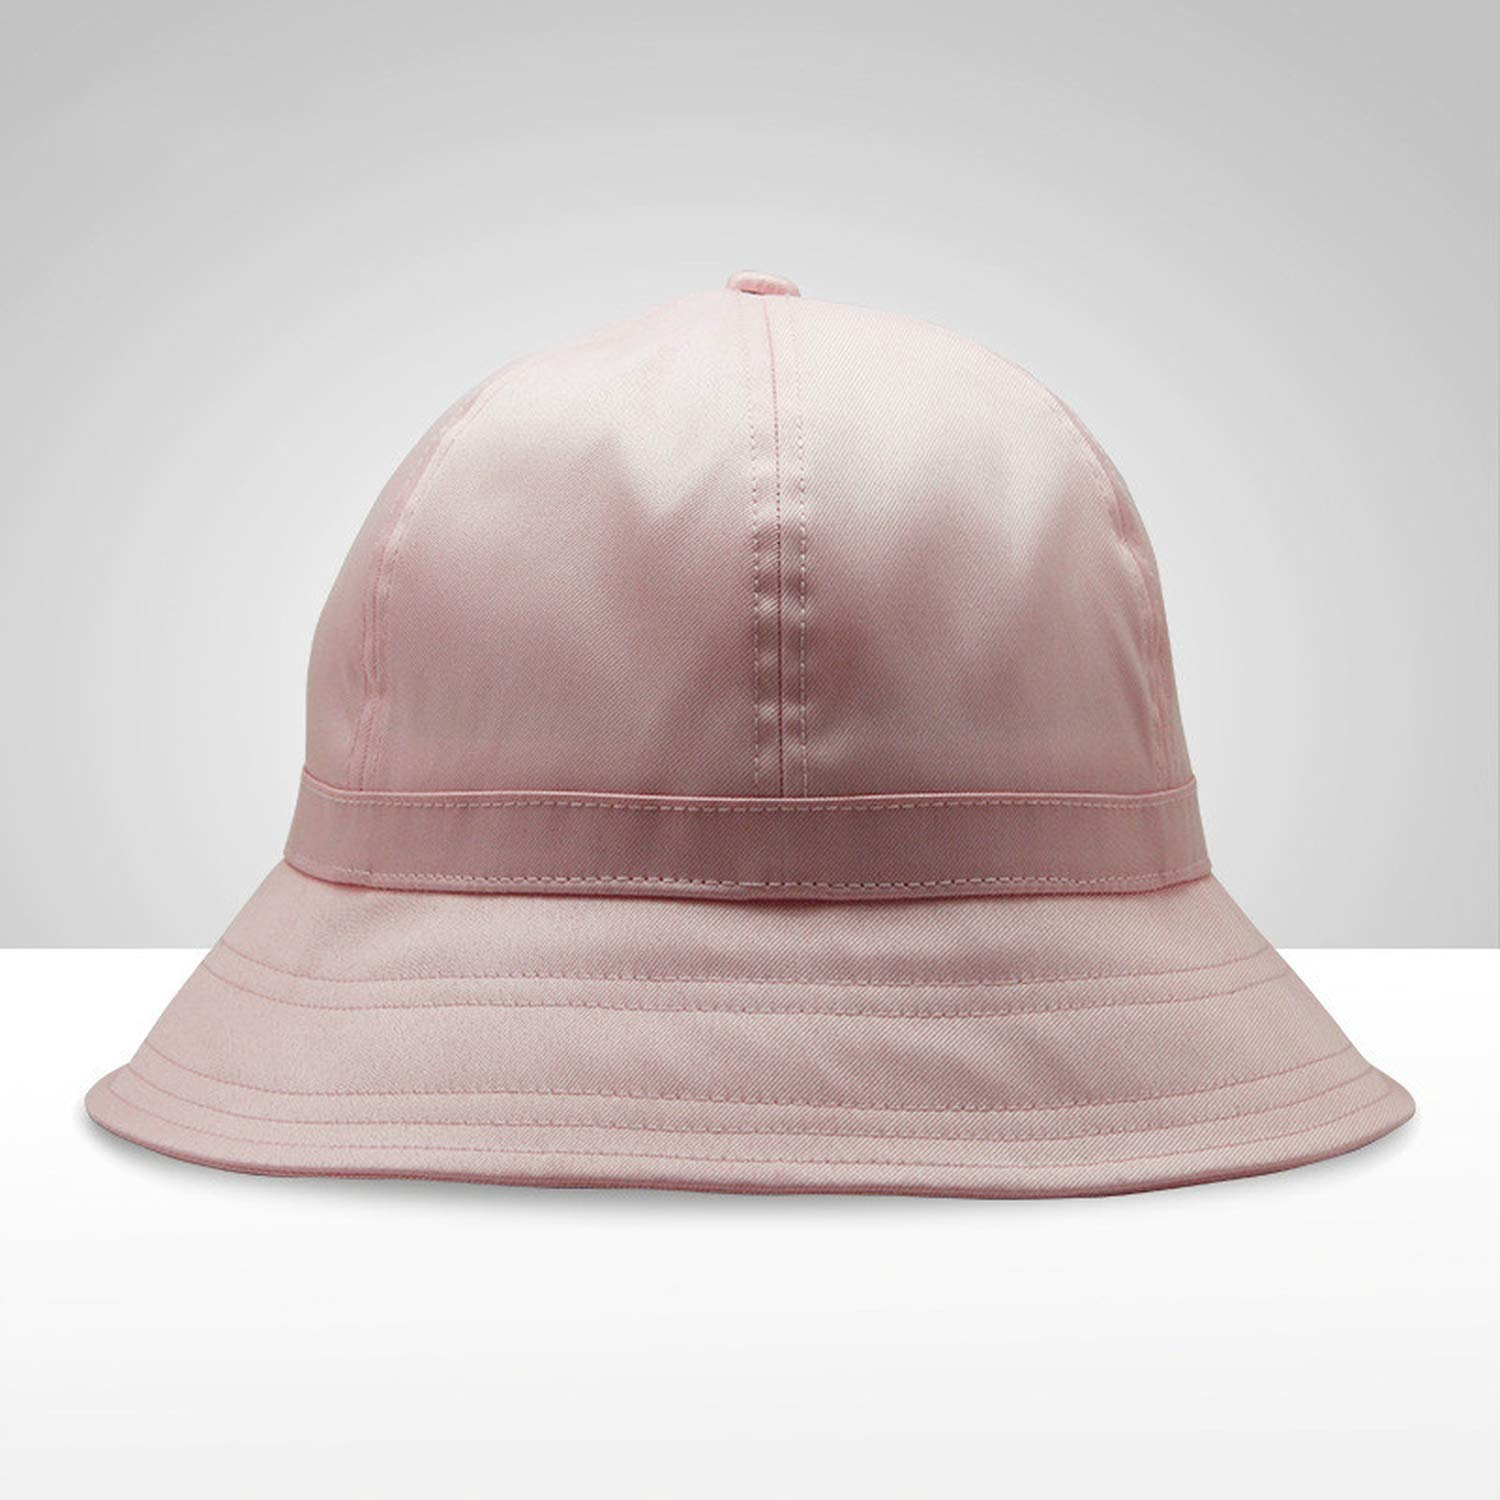 Bucket Hat Women Summer Autumn Fishing Hat Solid Color Bucket Hats with Ribbon Bob Hat Black Cap Hip Hop New